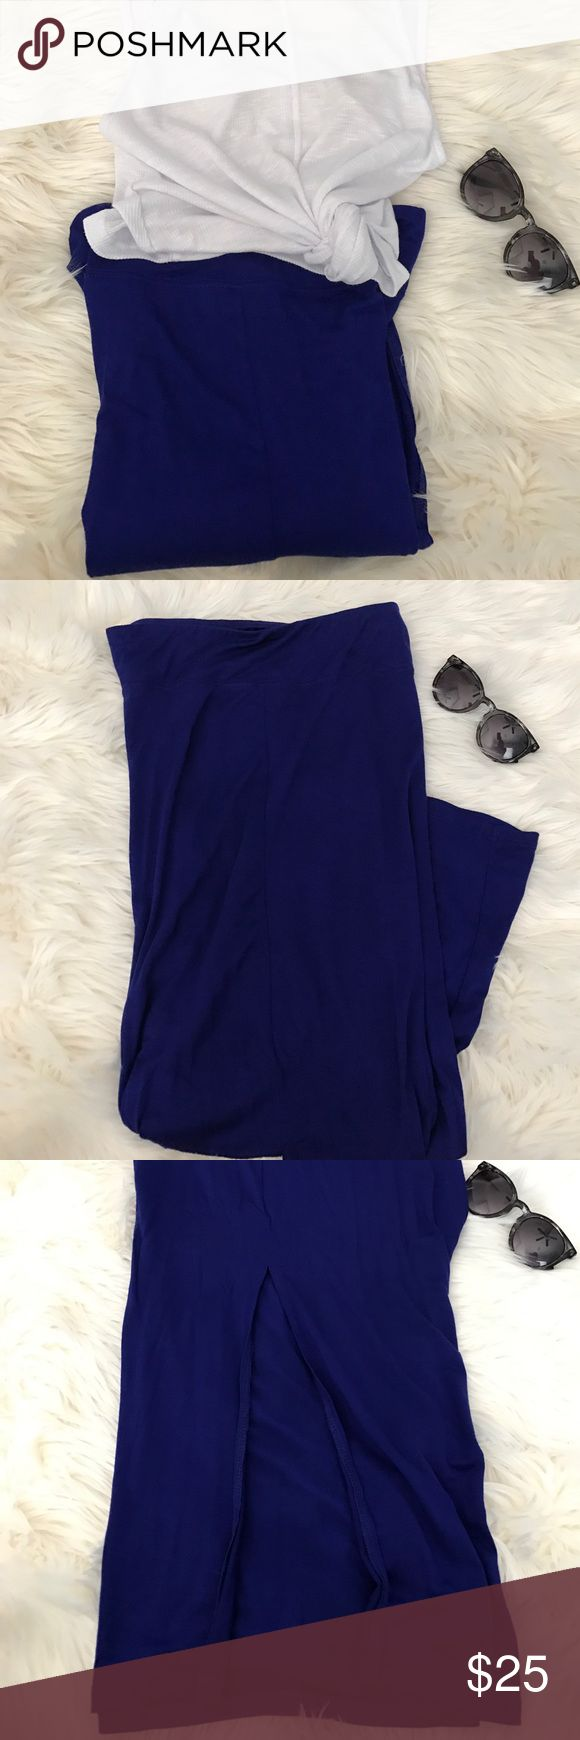 Kensie Bright Blue Maxi Skirt Kensie Bright Blue Maxi Skirt.  Has a slit in front middle.  Soft, cozy and chic.  New without tags. Kensie Skirts Maxi